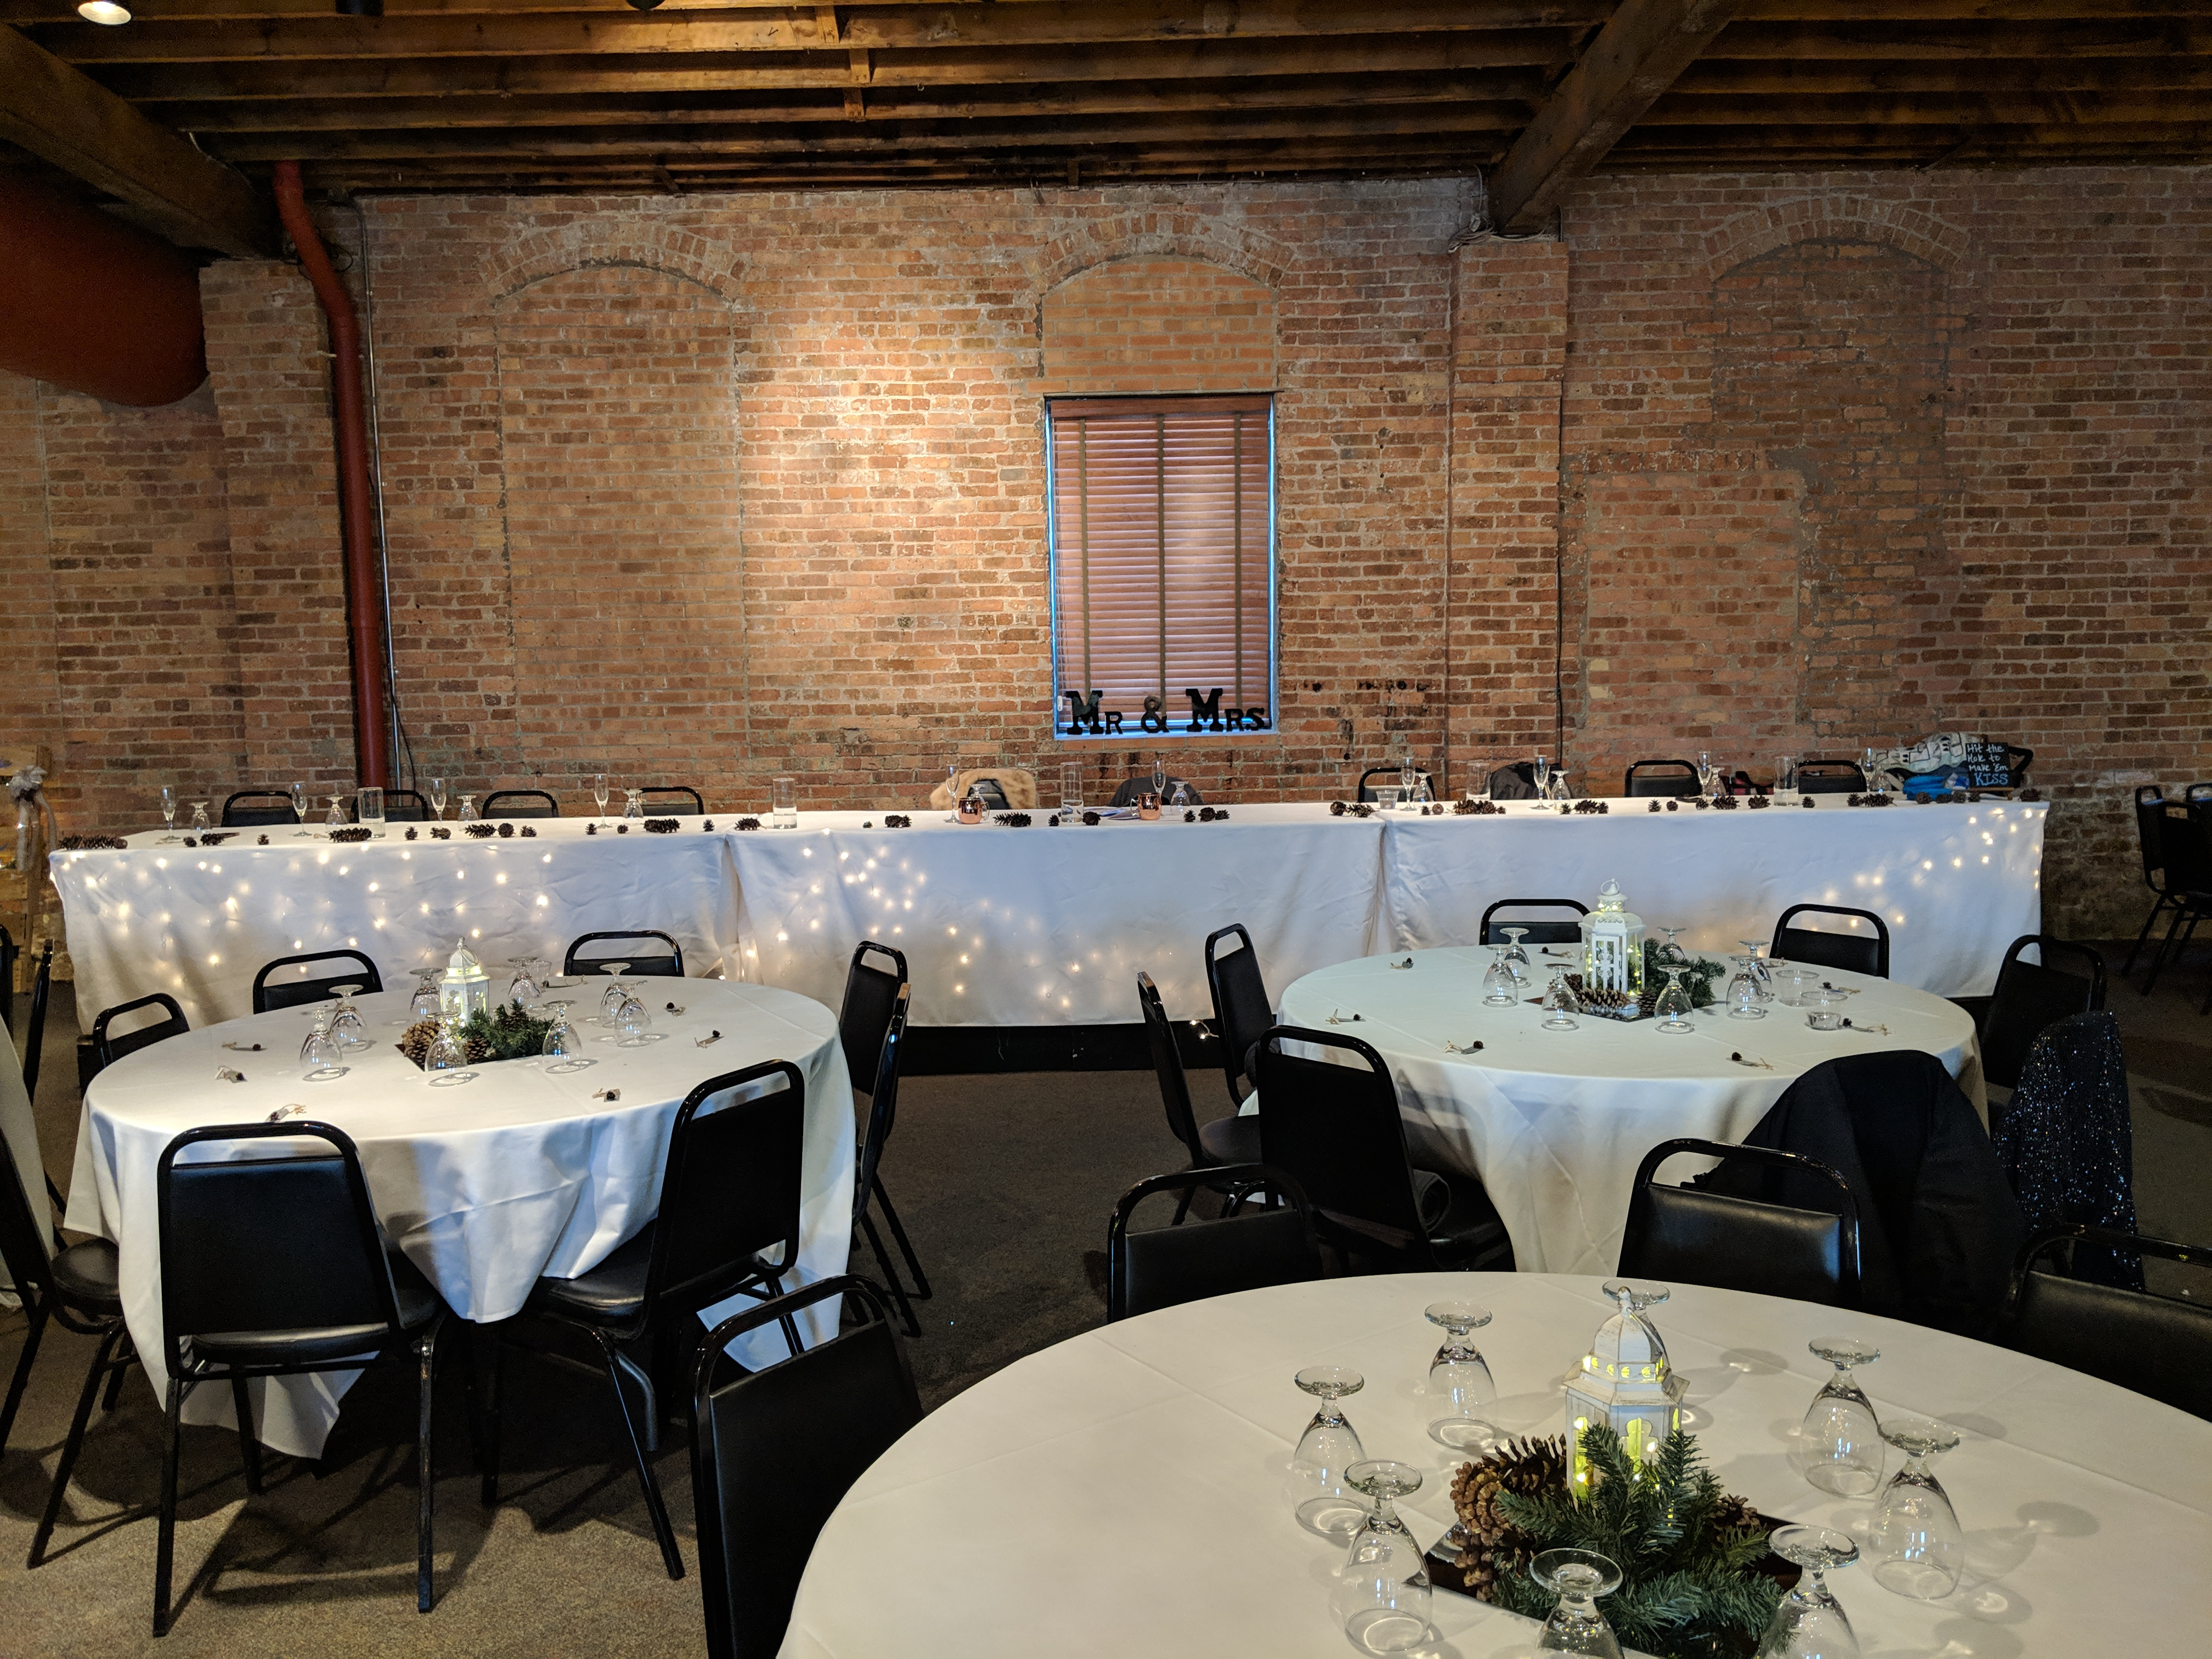 baraboo arts center head table